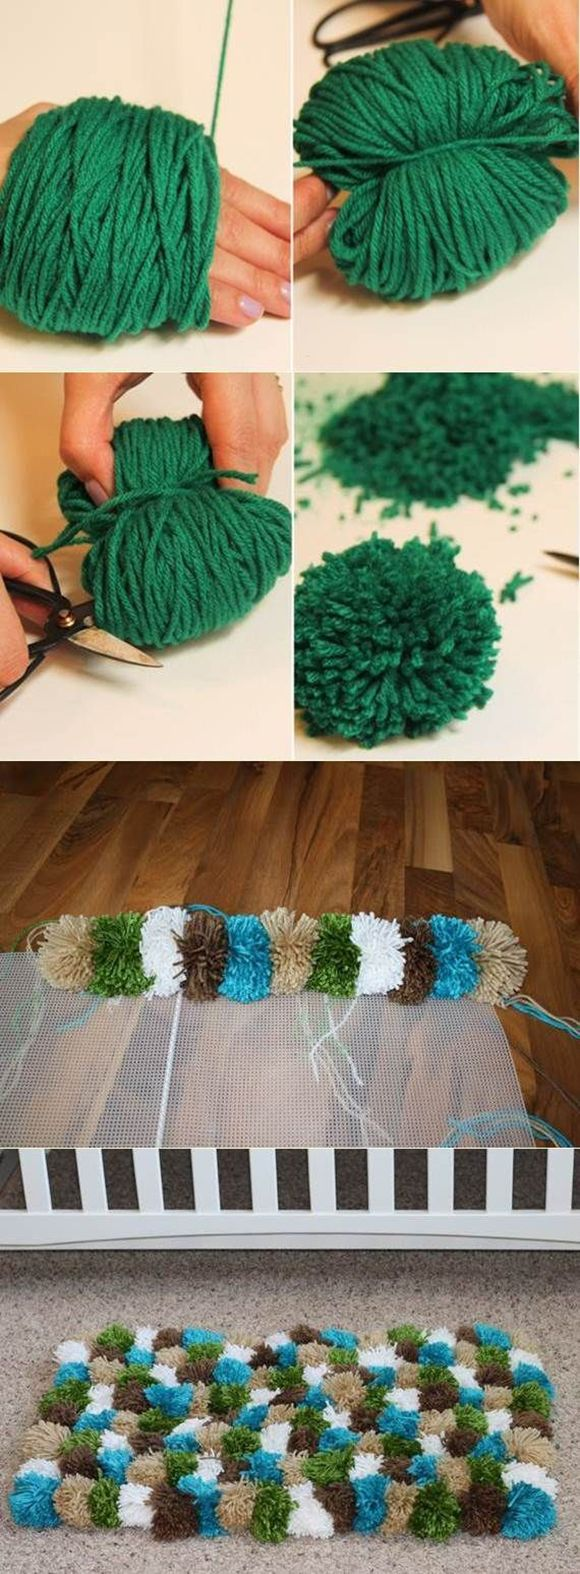 DIY Pom-Pom Decorations | DIY & Crafts